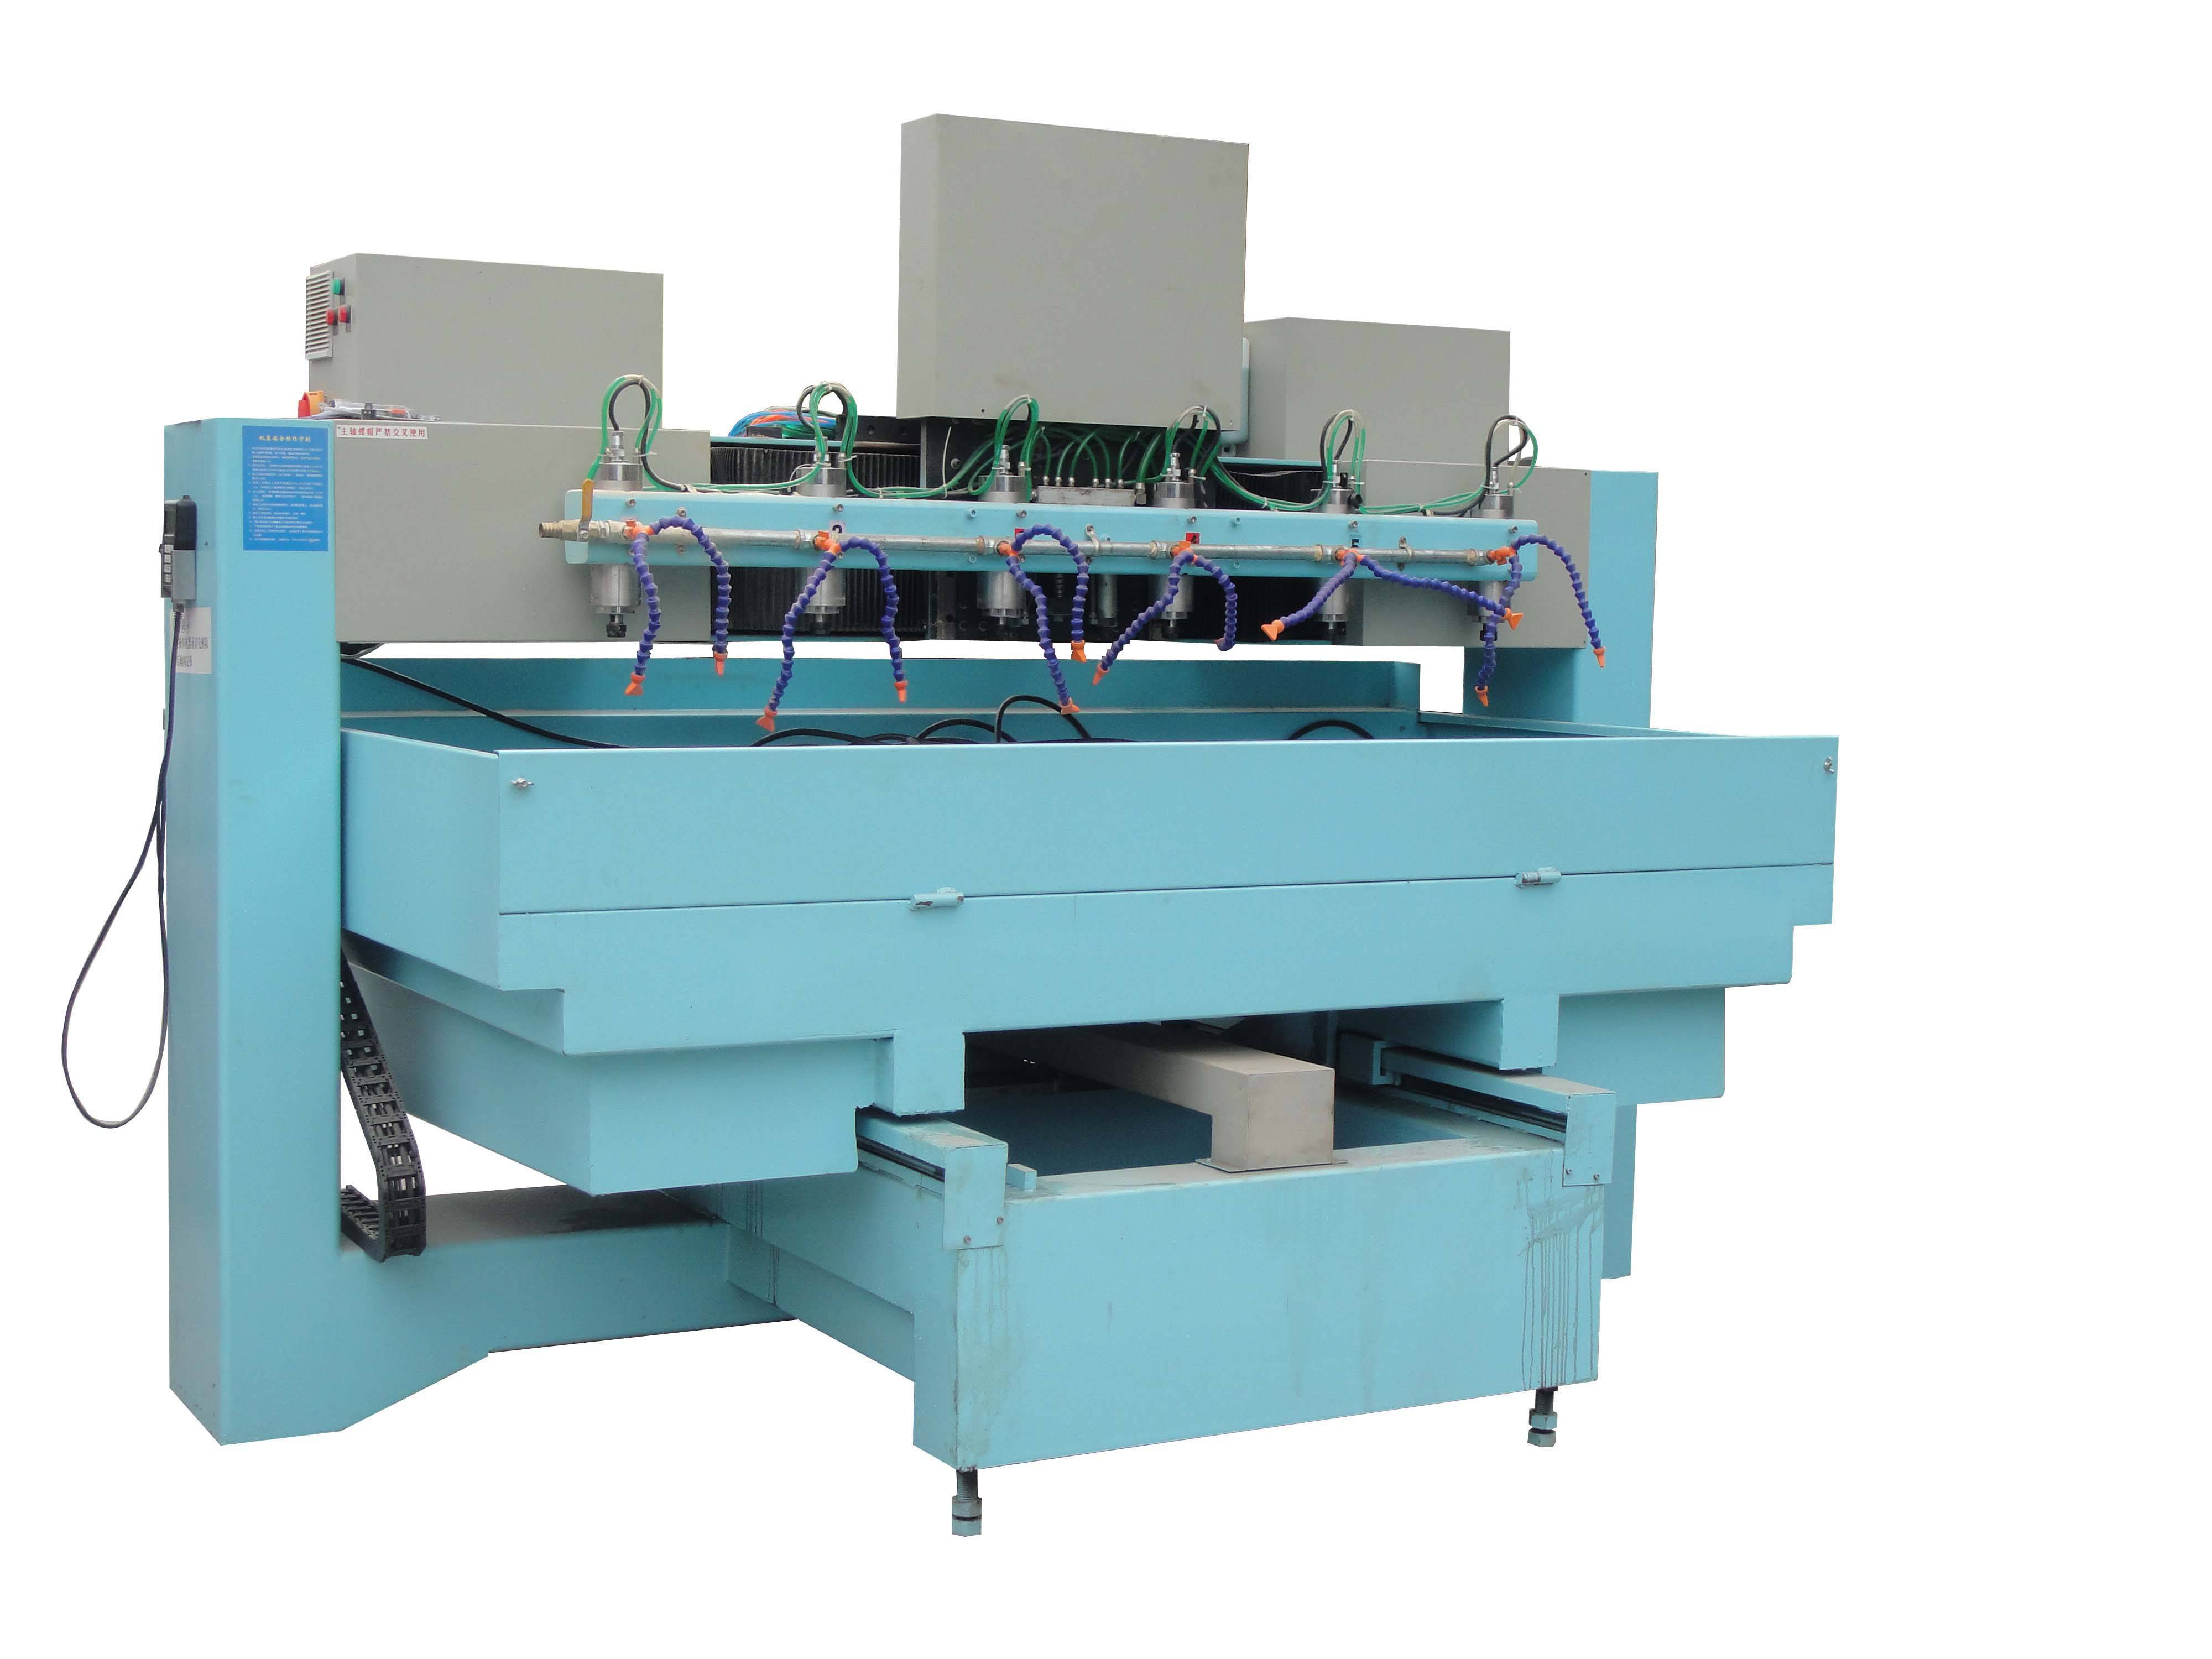 3D 4 axis CNC Router with Rotary axis